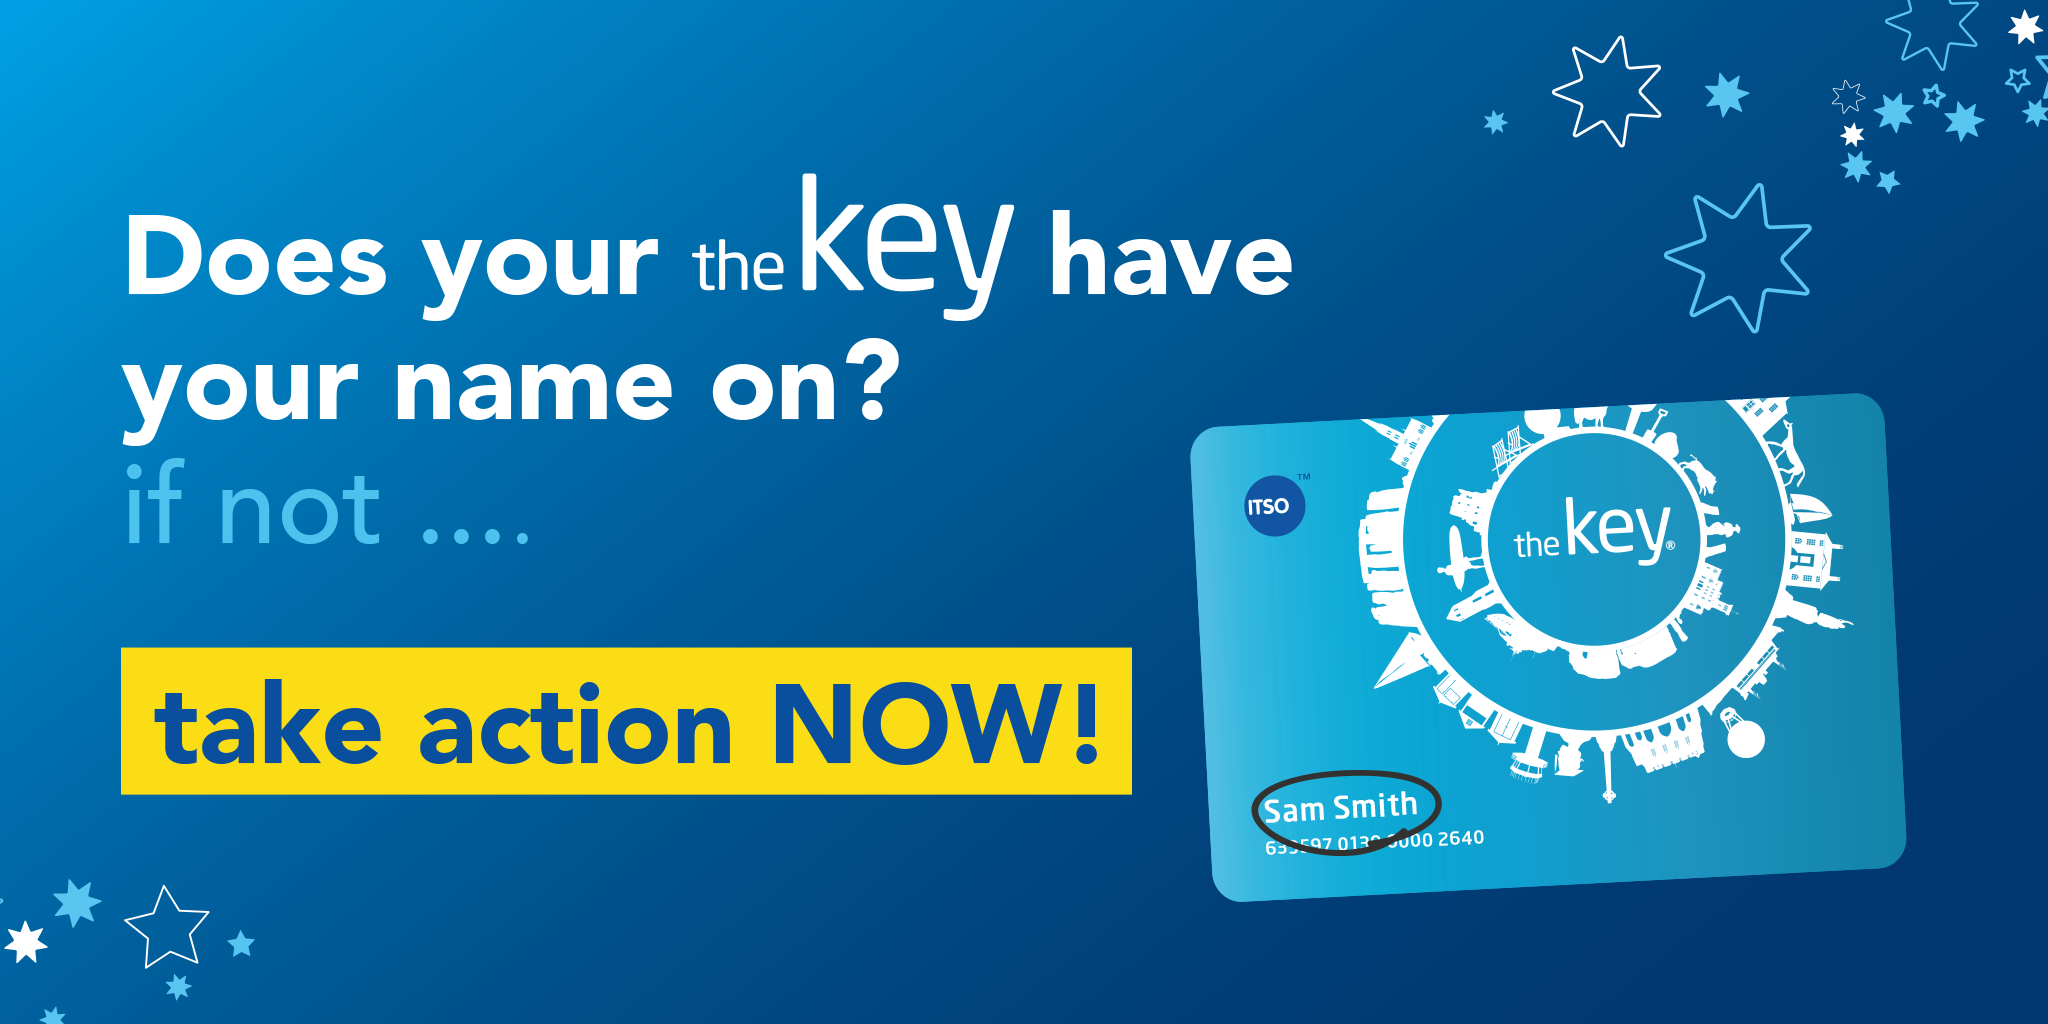 Image of a Key card reading 'Does your theKey have your name on? If not... take action NOW!'